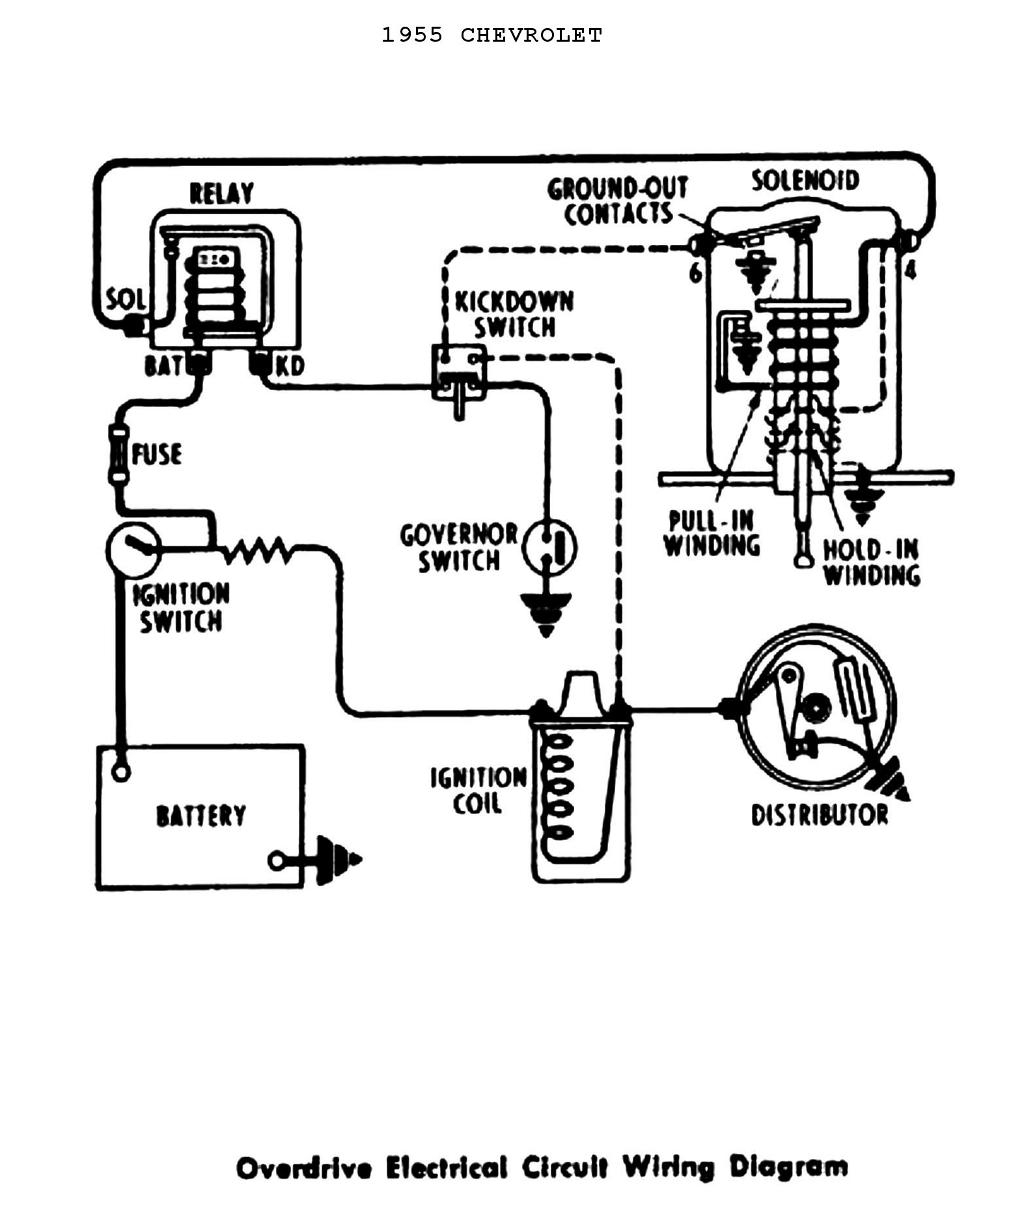 diagram of distributor